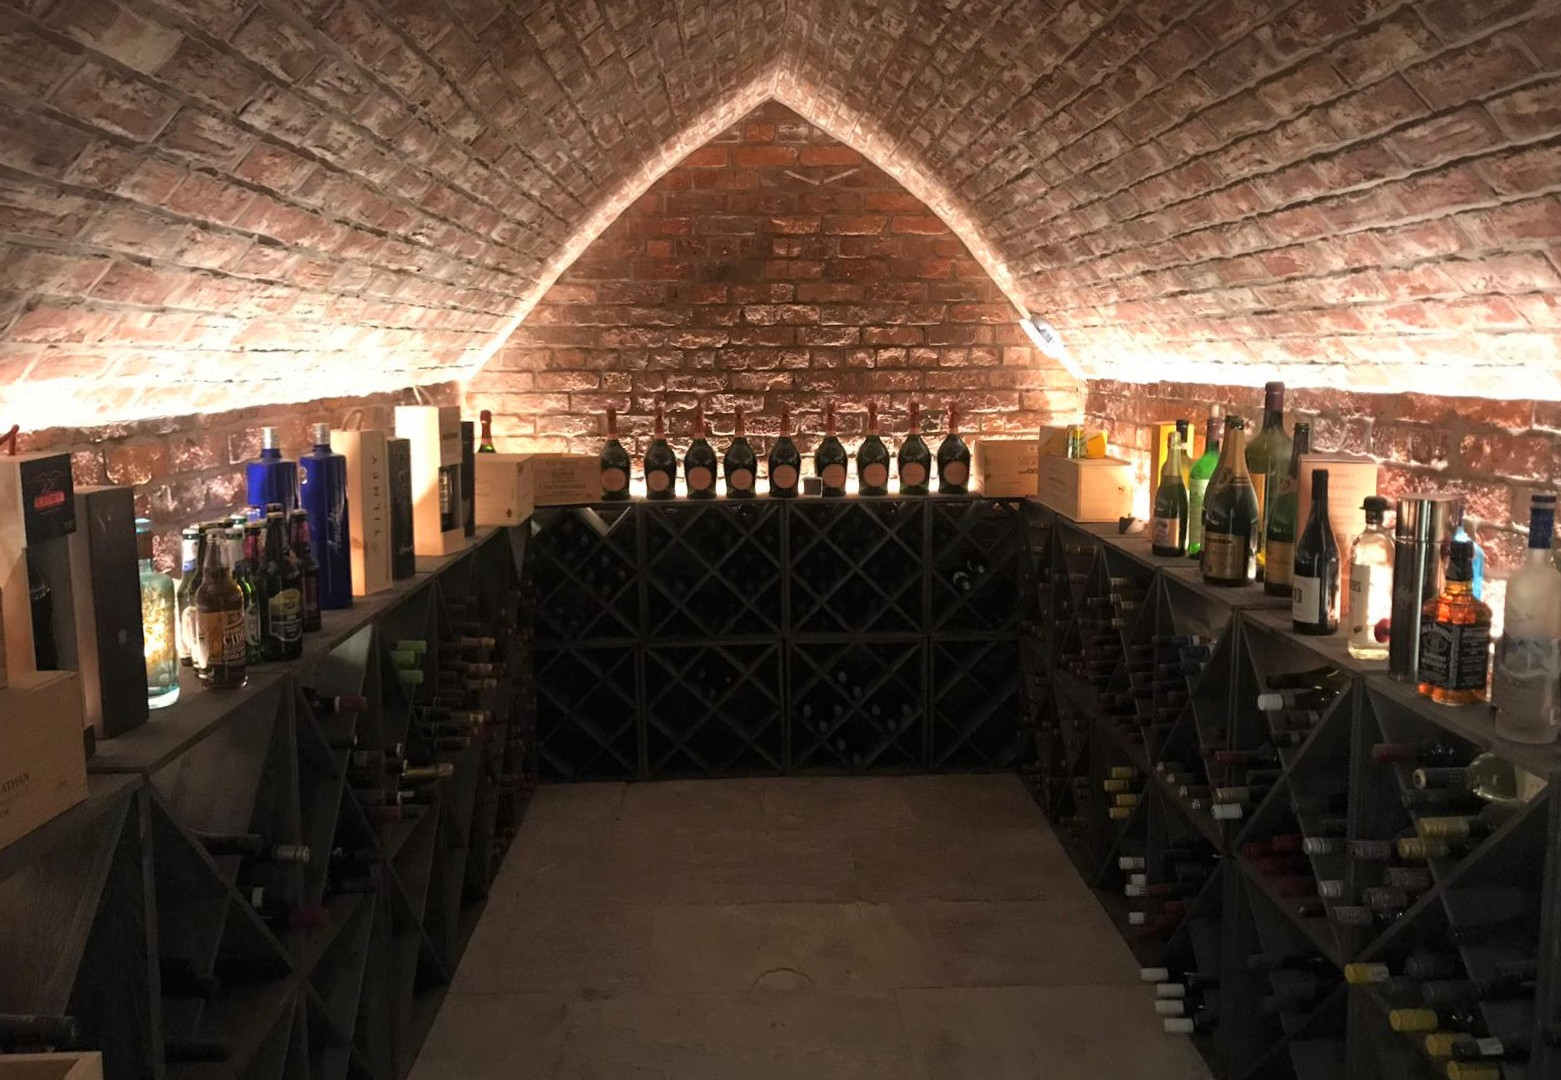 Installation of LED lighting in a wine cellar in Altrincham.